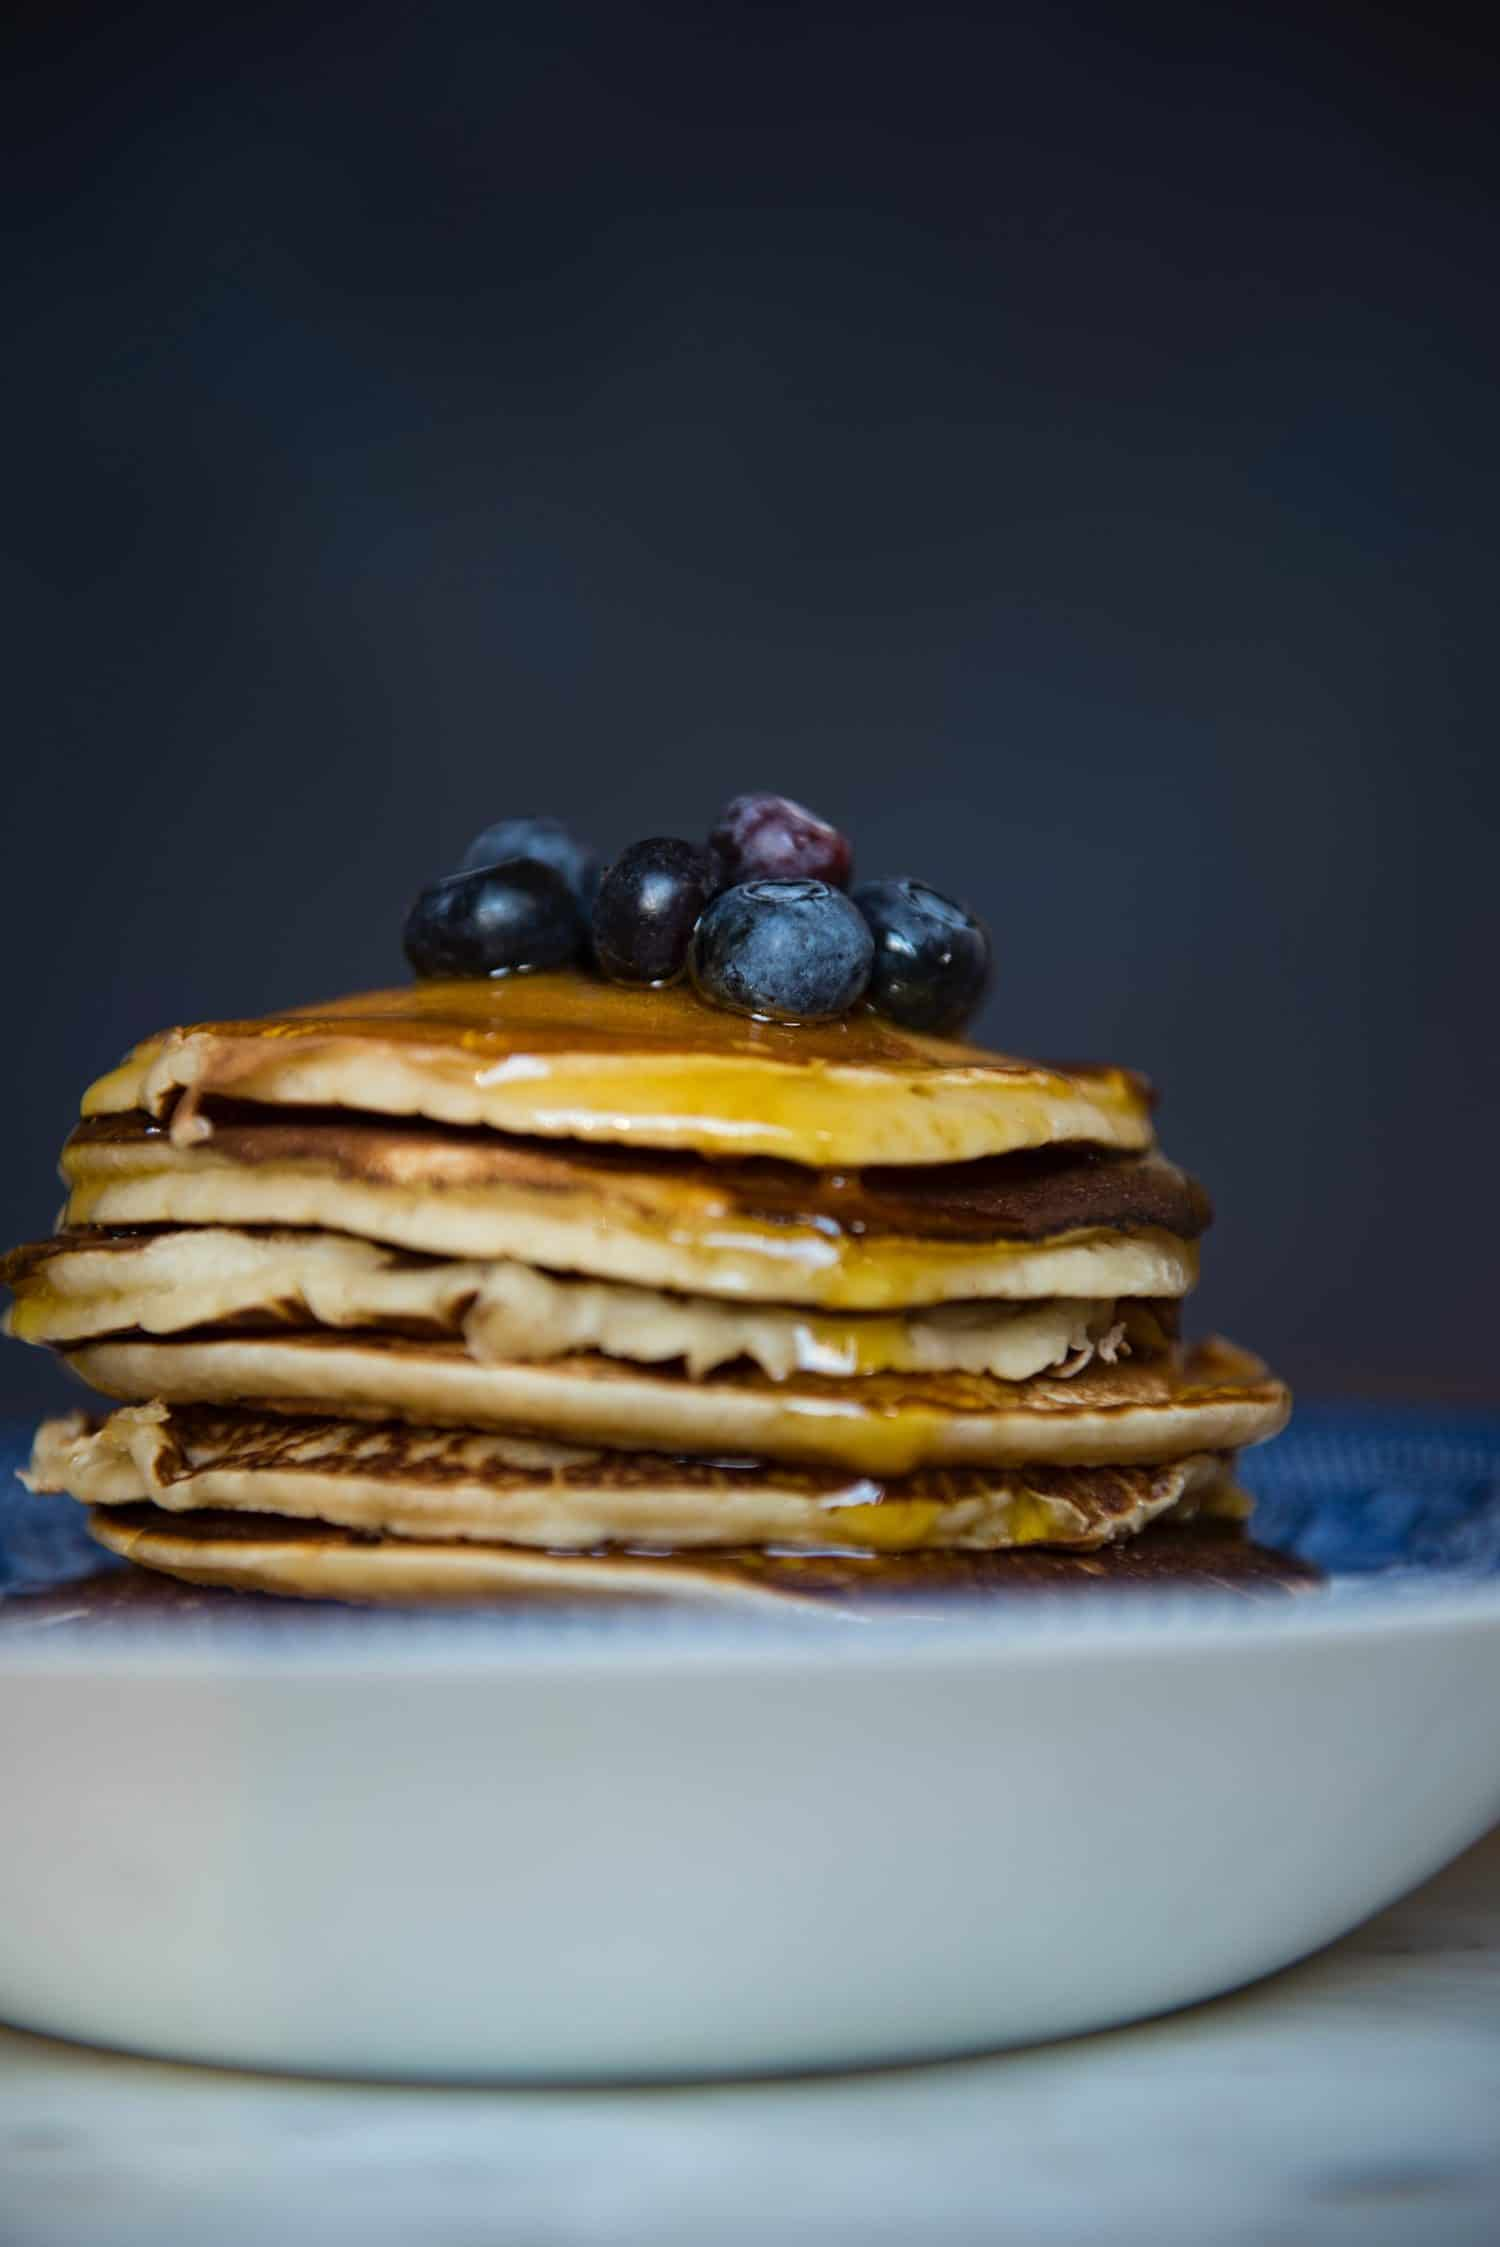 There's no yummier breakfast food than fresh flapjacks with syrup. Chef Thandi, AKA the Glam Chef, has a recipe for fluffy flapjacks that you will love.